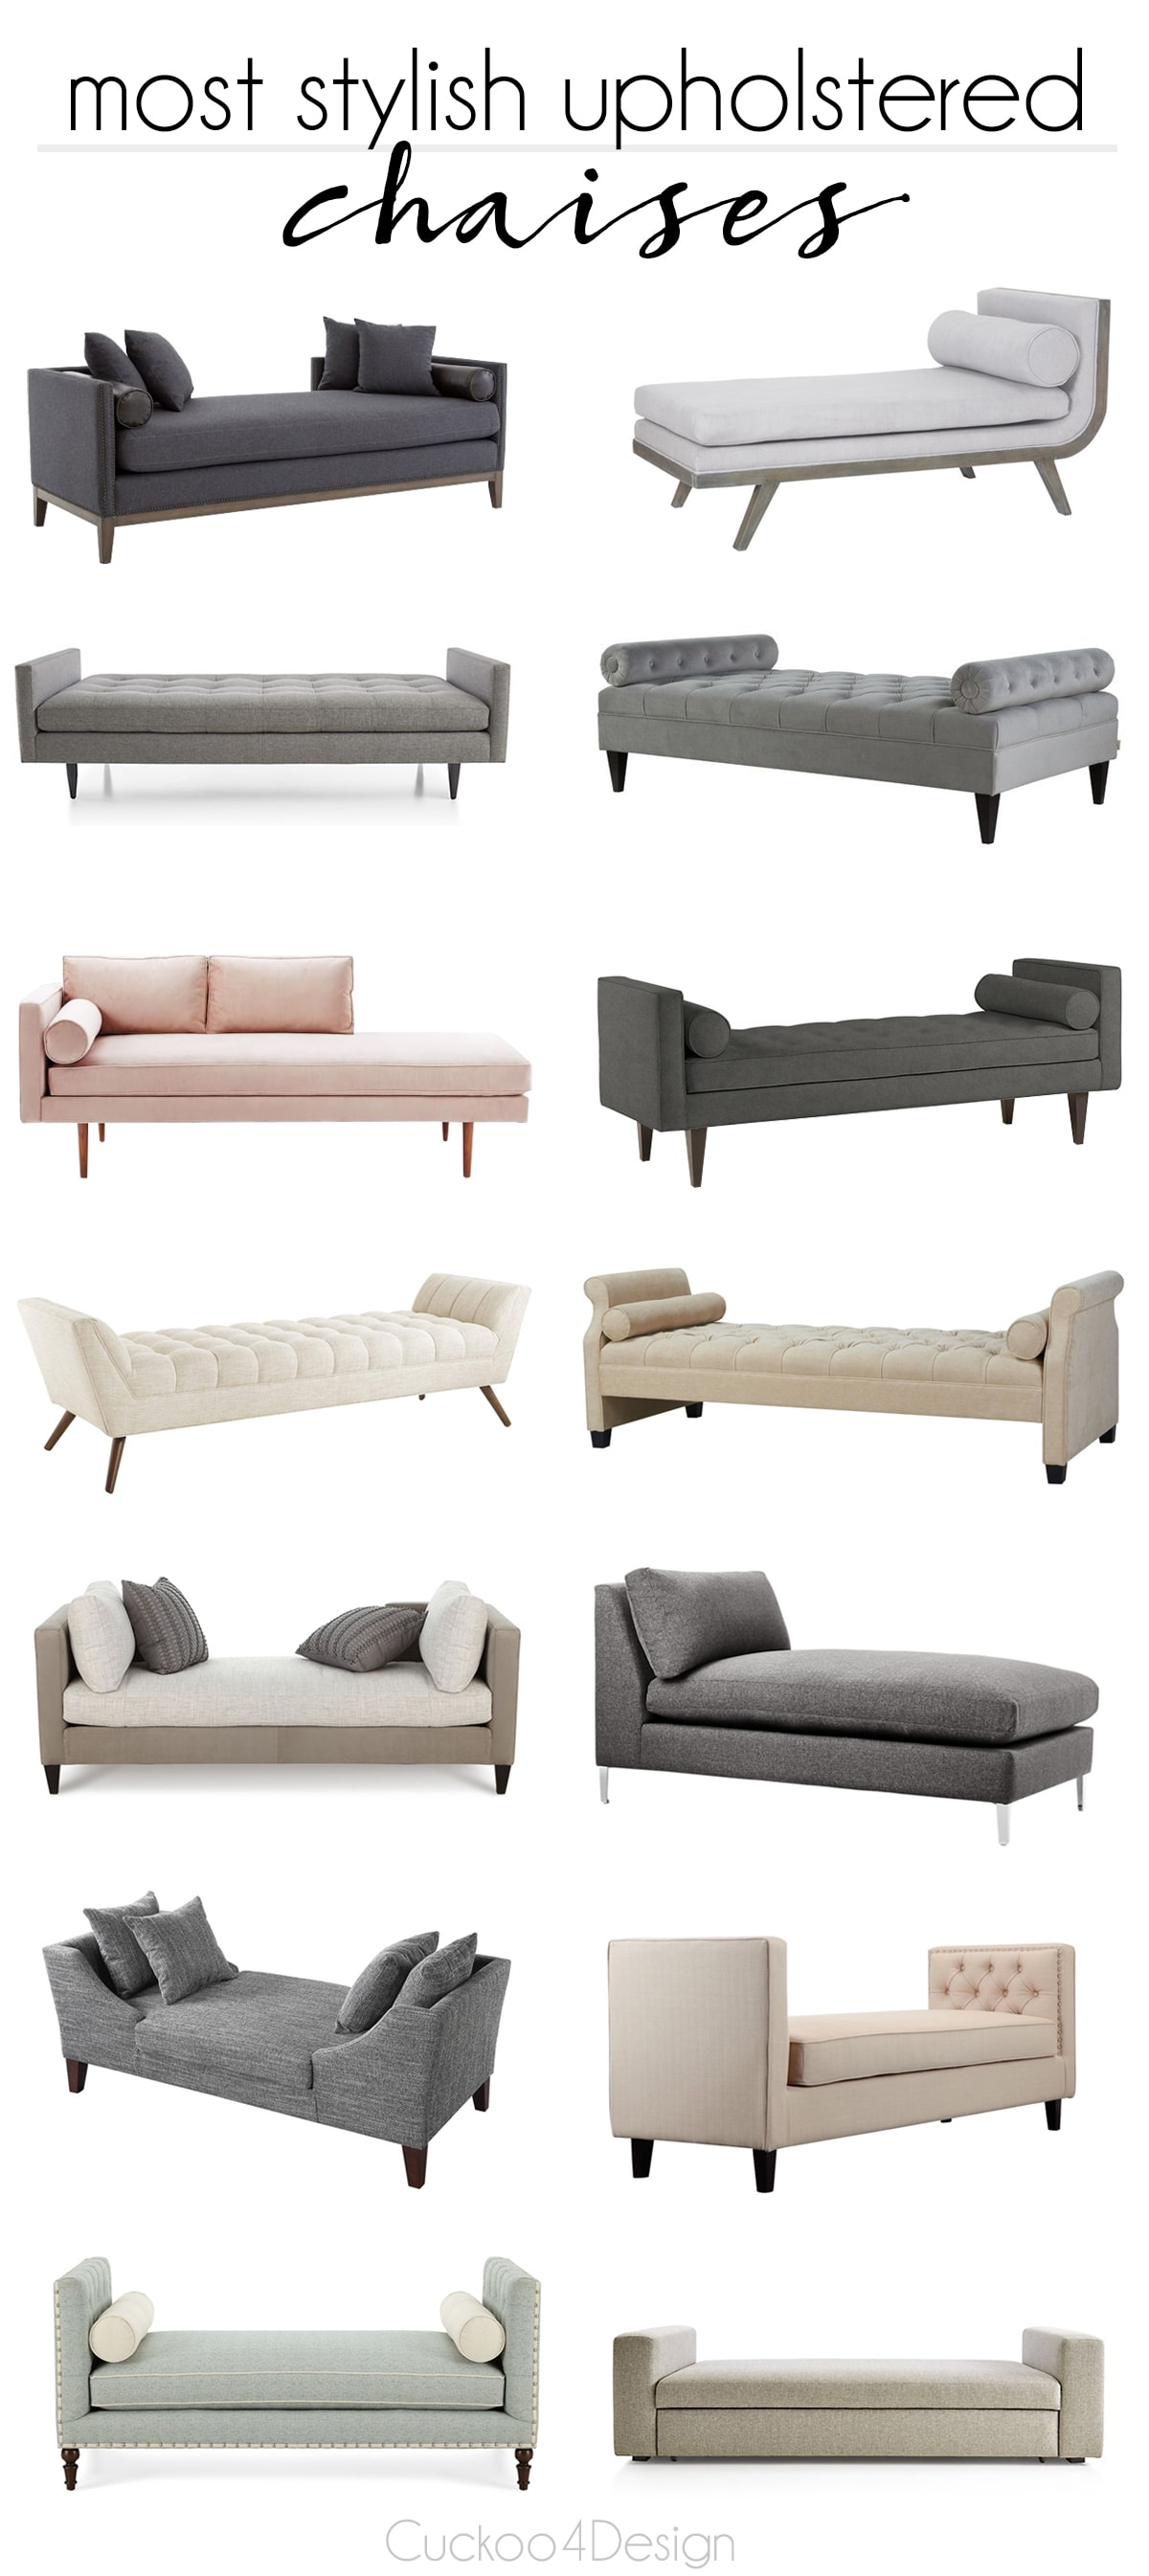 14 most stylish upholstered chaises and benches | button tufted chaise | chaise for in front of a bed | bench for in front of a bed | nailhead trim chaise | nailhead trim bench | daybeds |